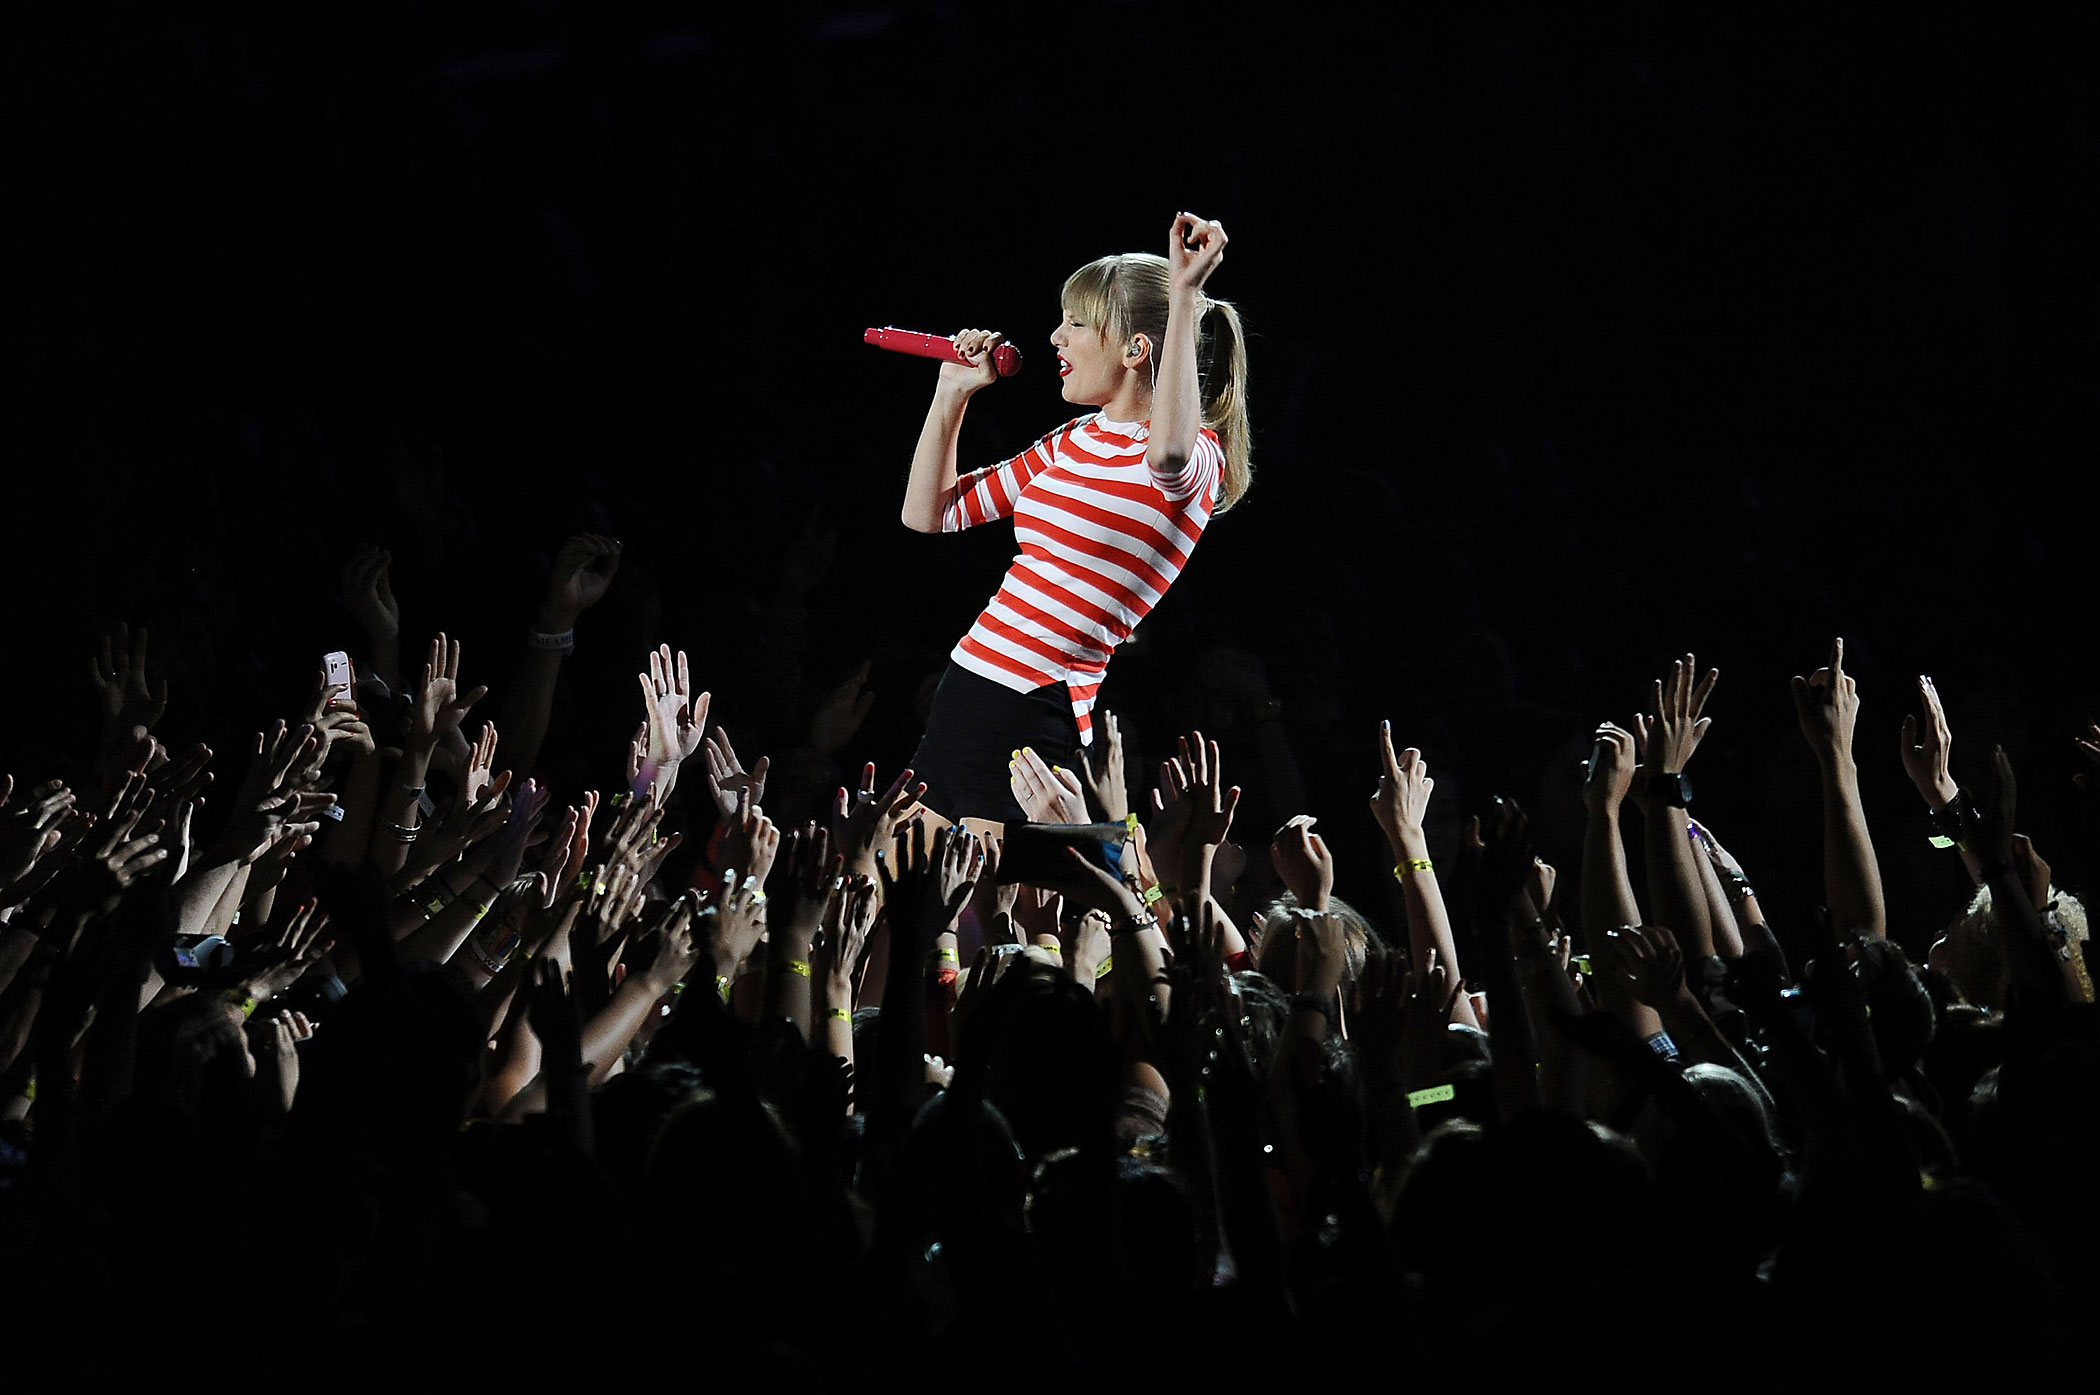 Taylor Swift performs at the 2012 MTV Video Music Awards at Staples Center in Los Angeles, California.